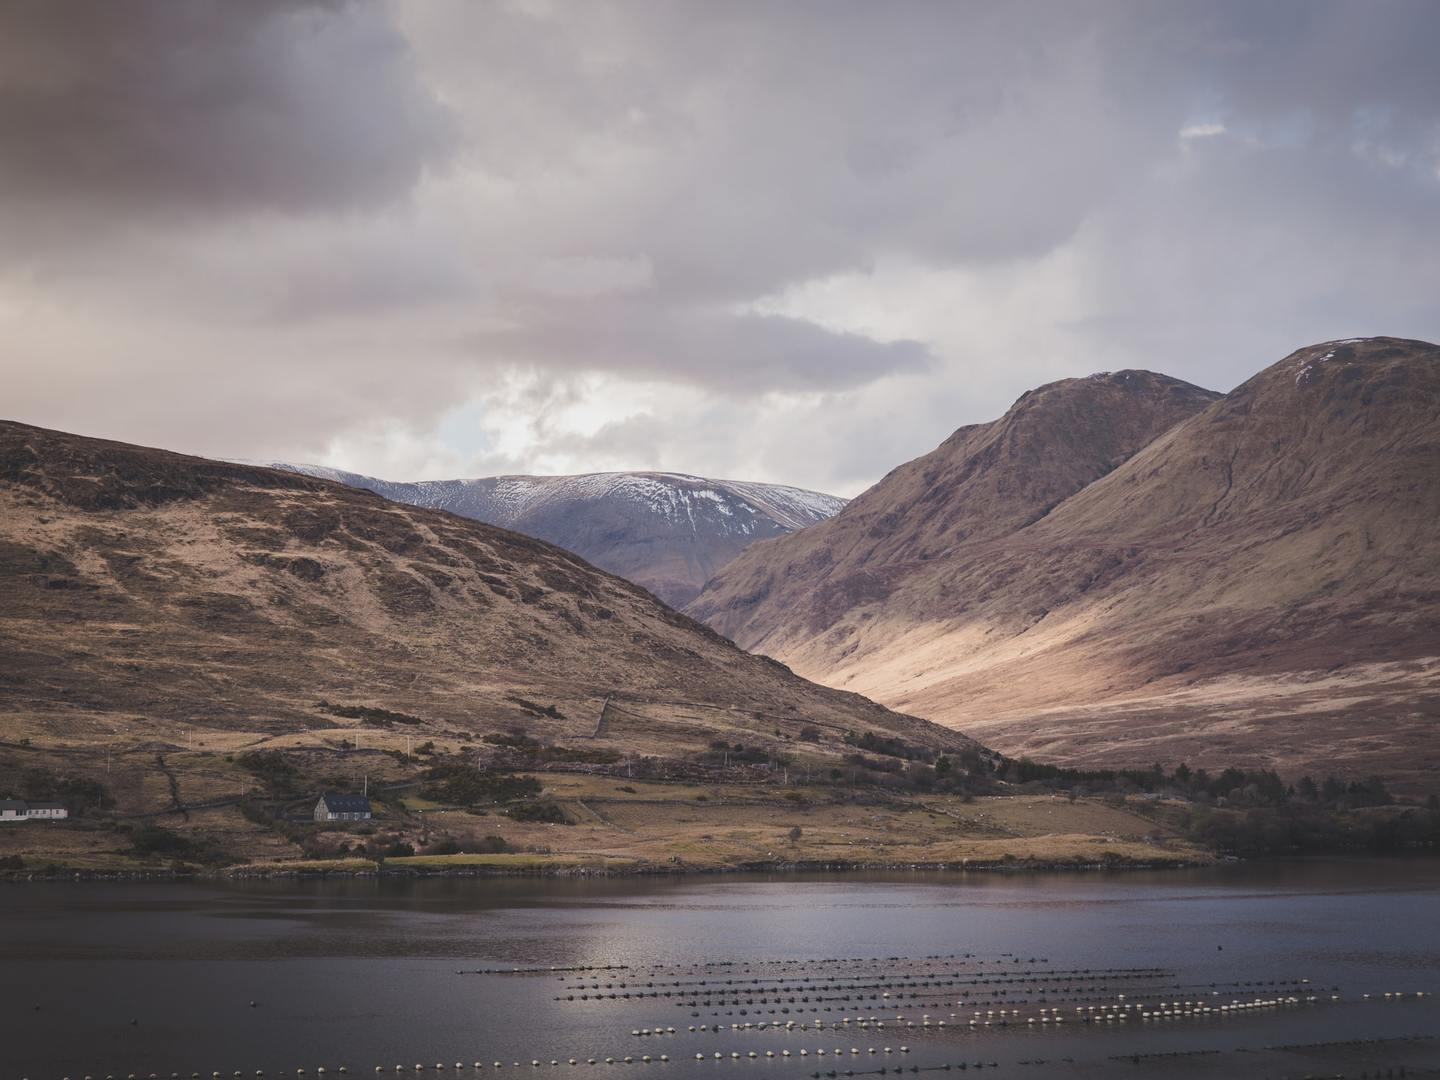 Killary Harbour on the border between the counties of Galway and Mayo